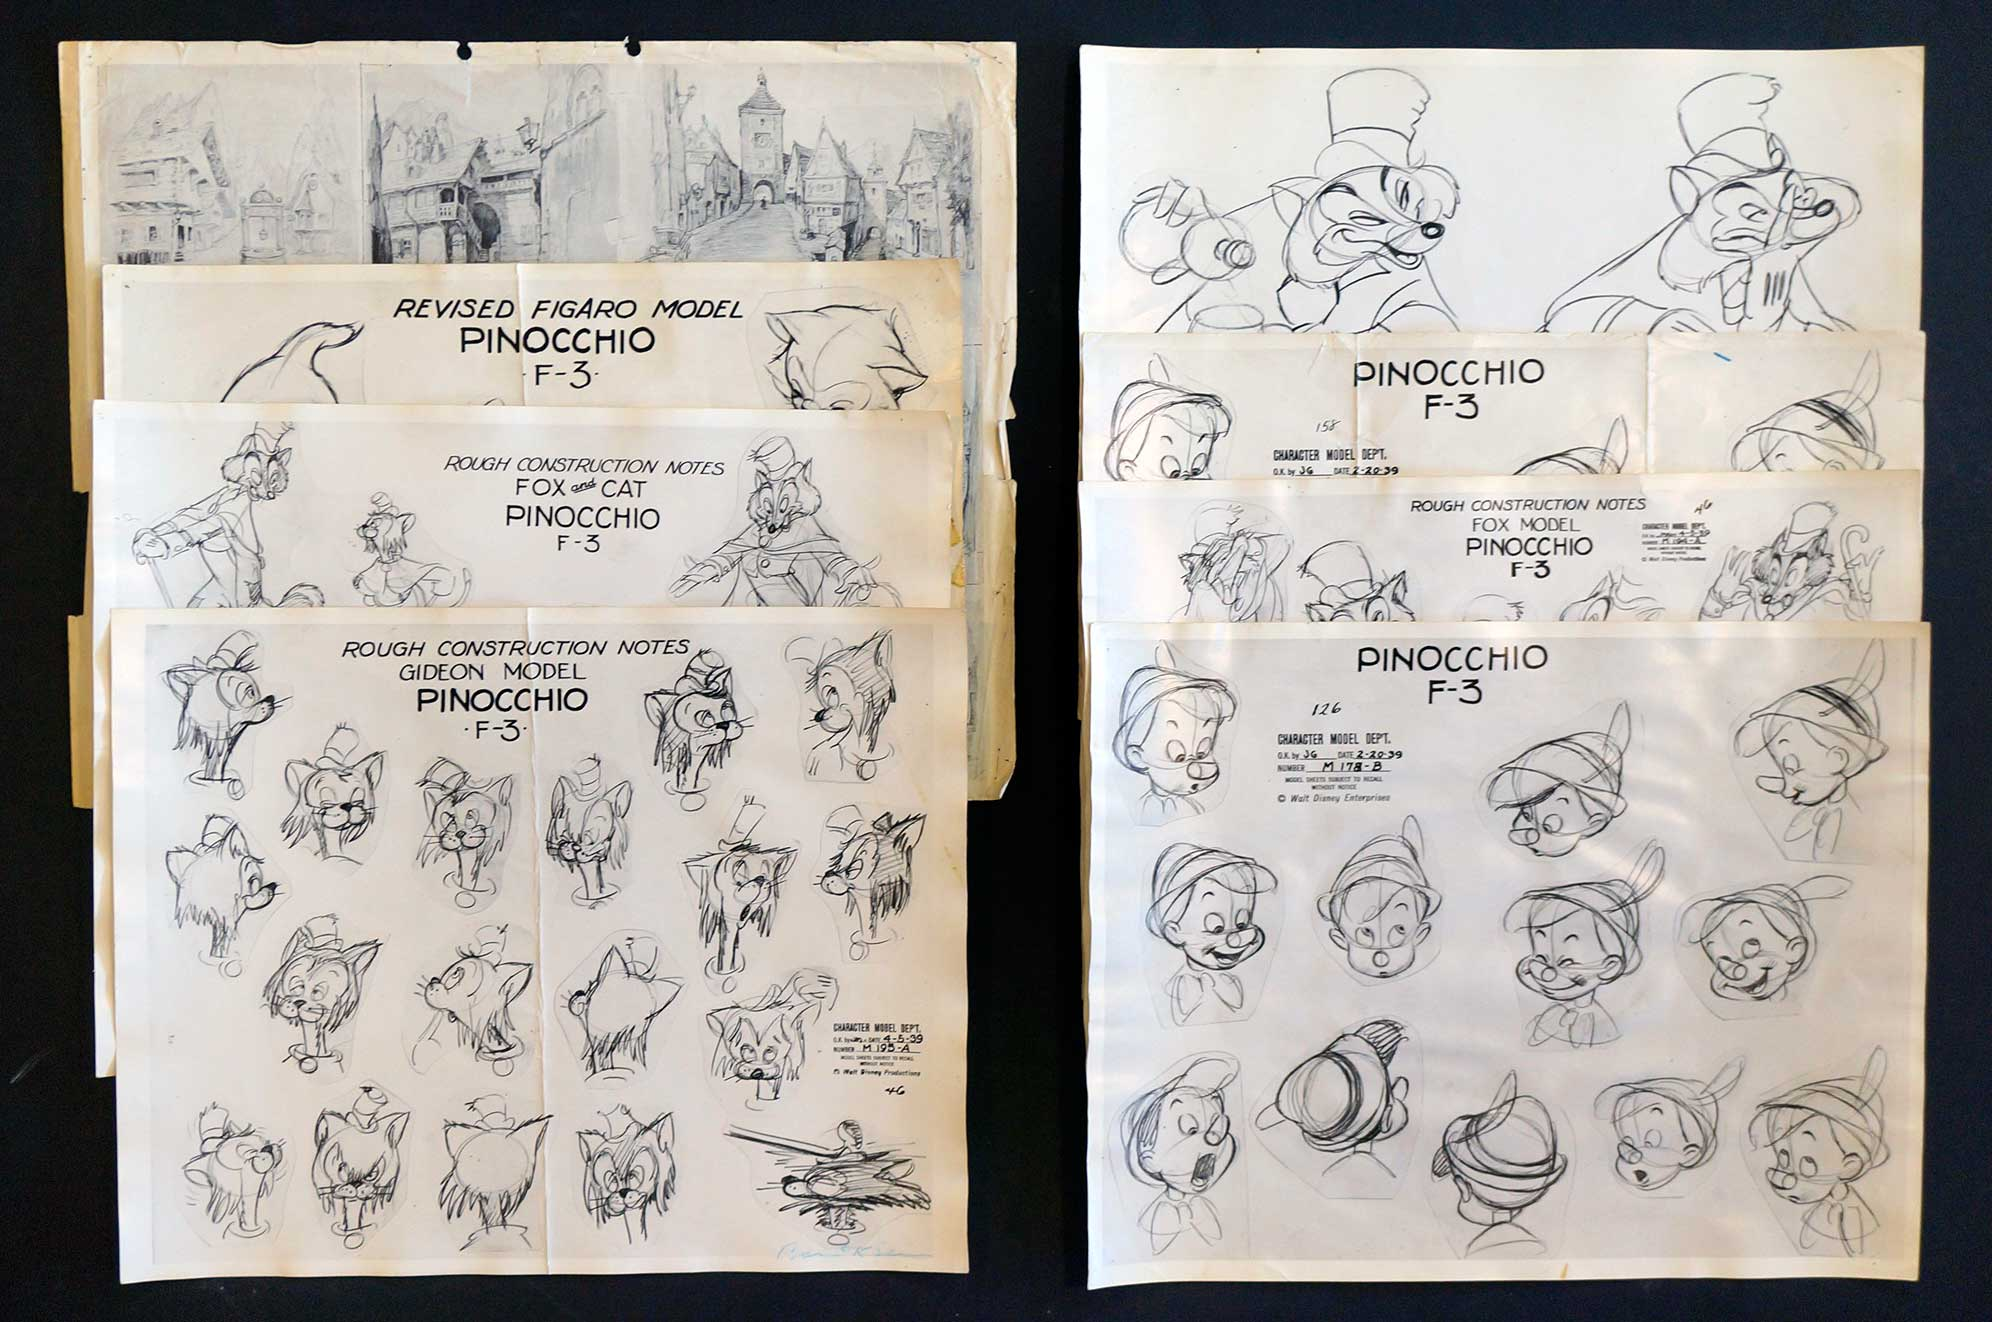 Disney Model Sheets from Pinocchio